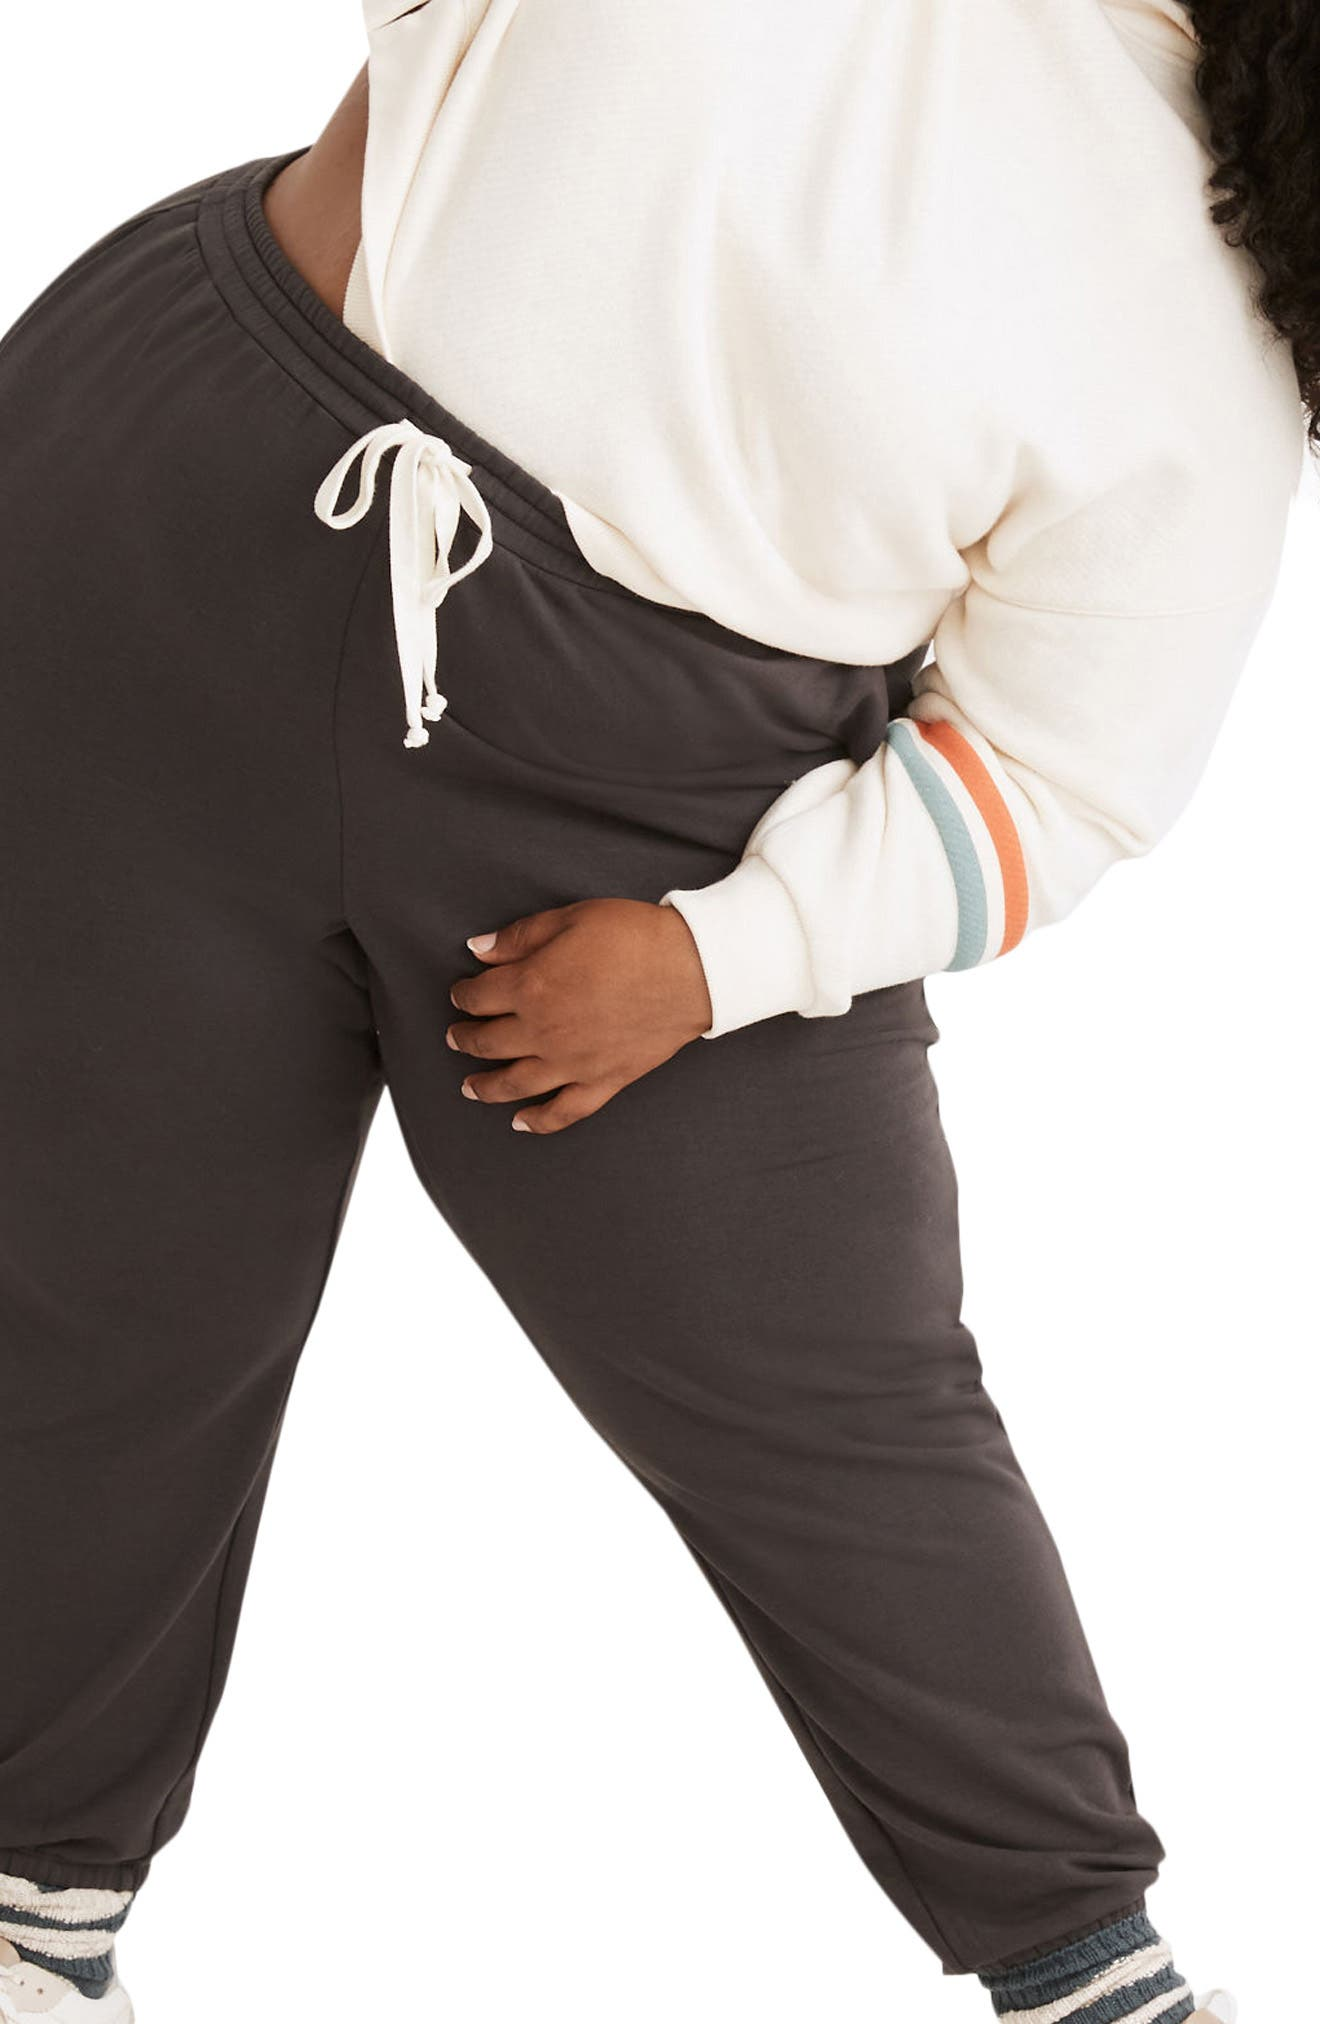 Plus Women's Madewell MWL Superbrushed Easygoing Sweatpants